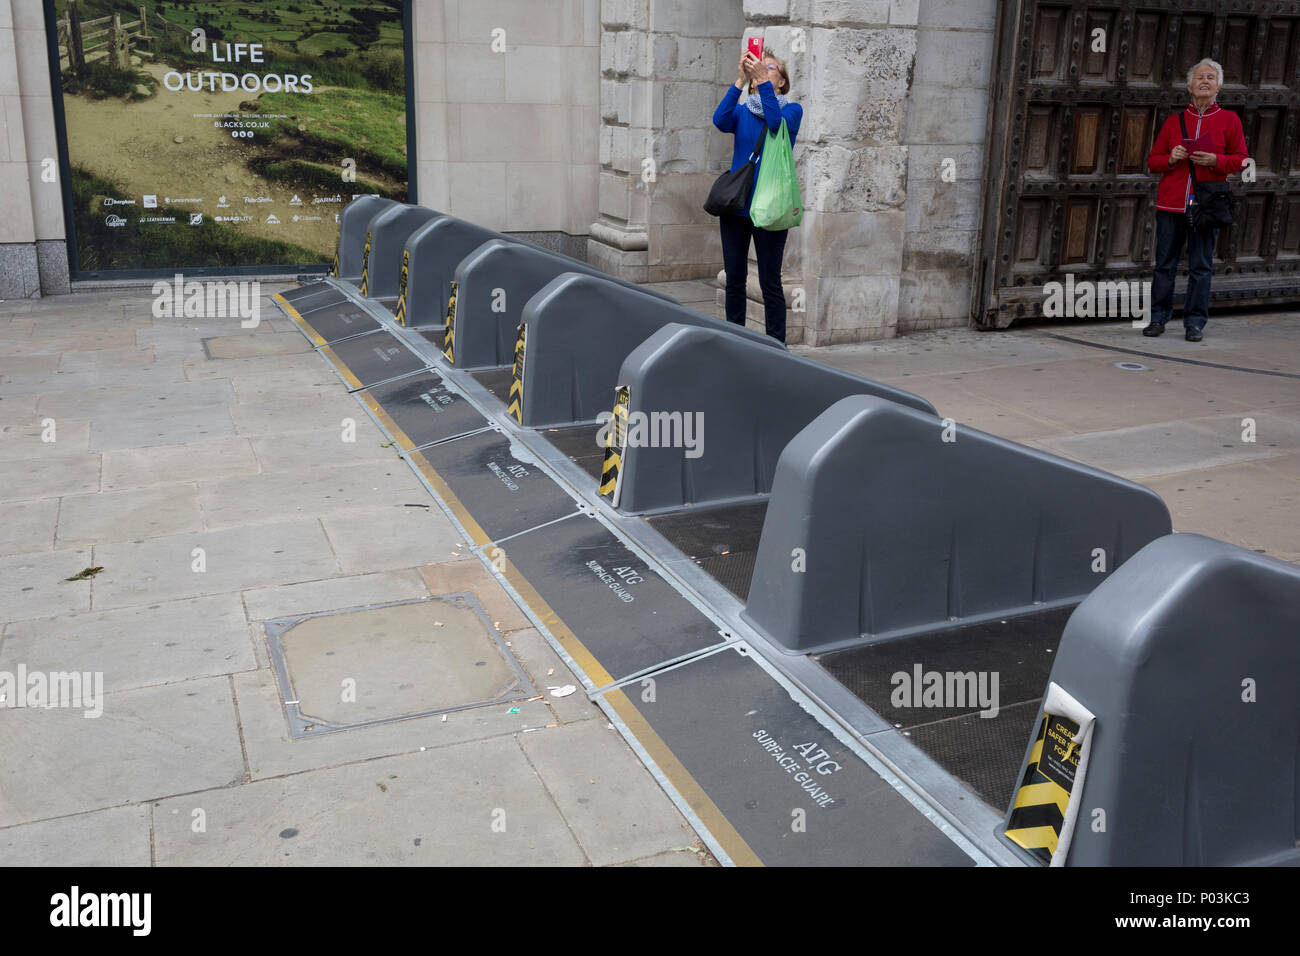 Pedestrians walk over security barriers at one of the entrances to Paternoster Square in the City of London - the capital's financial district, on 4th June 2018, in London, England. Stock Photo